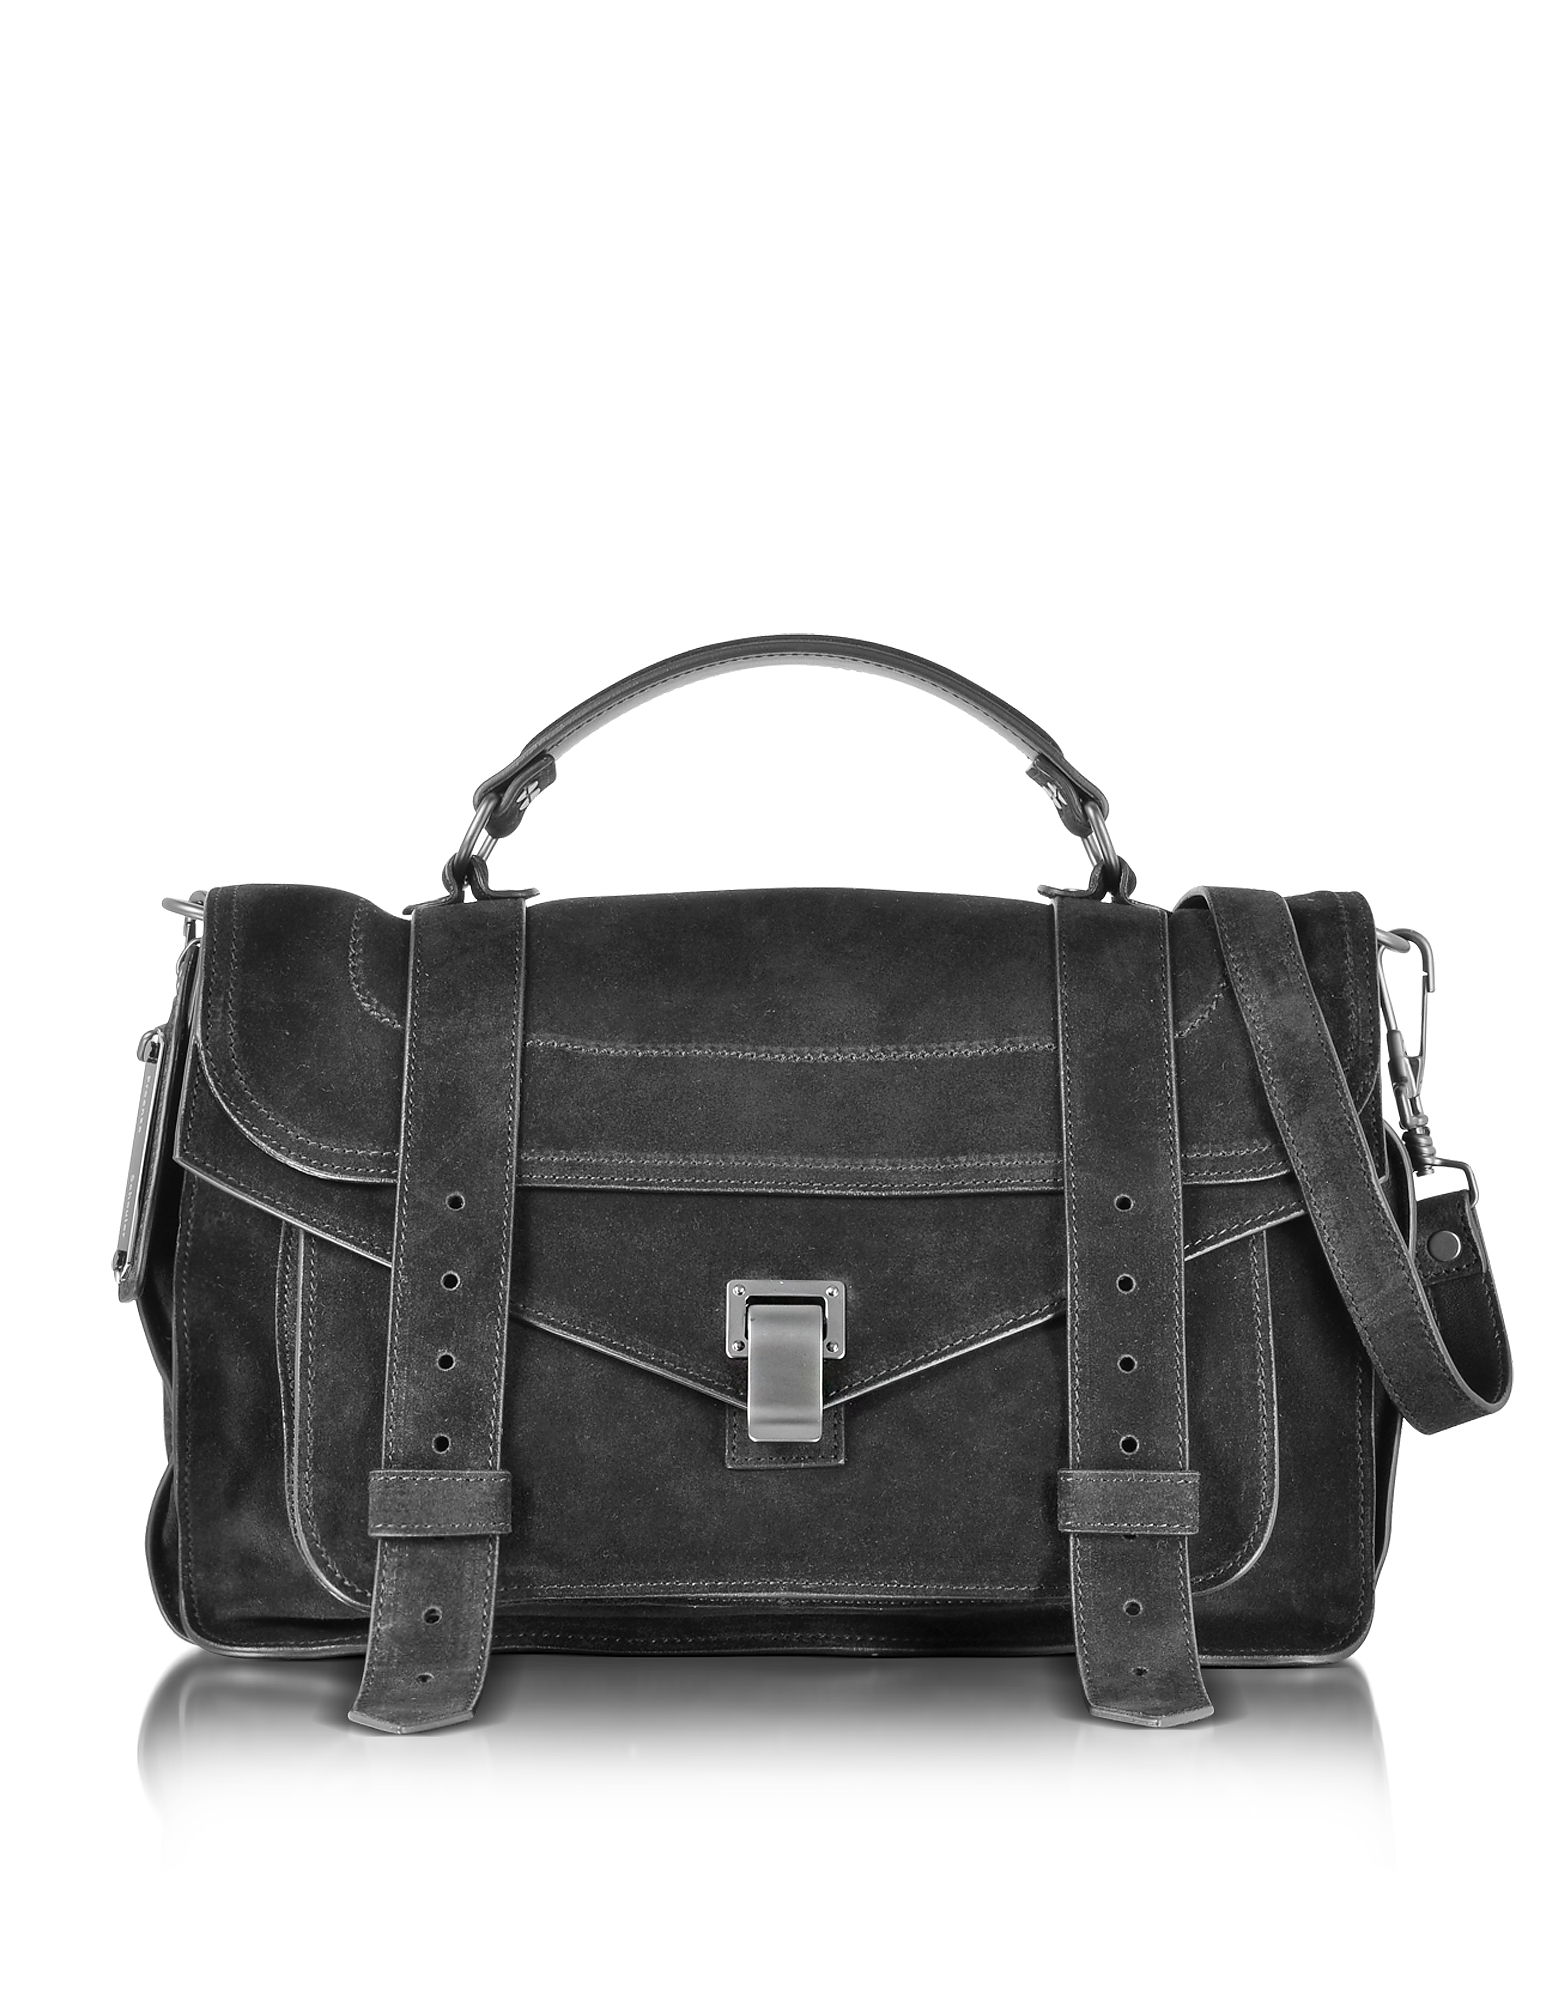 Proenza Schouler Handbags, PS1 Medium Black Suede Satchel Bag